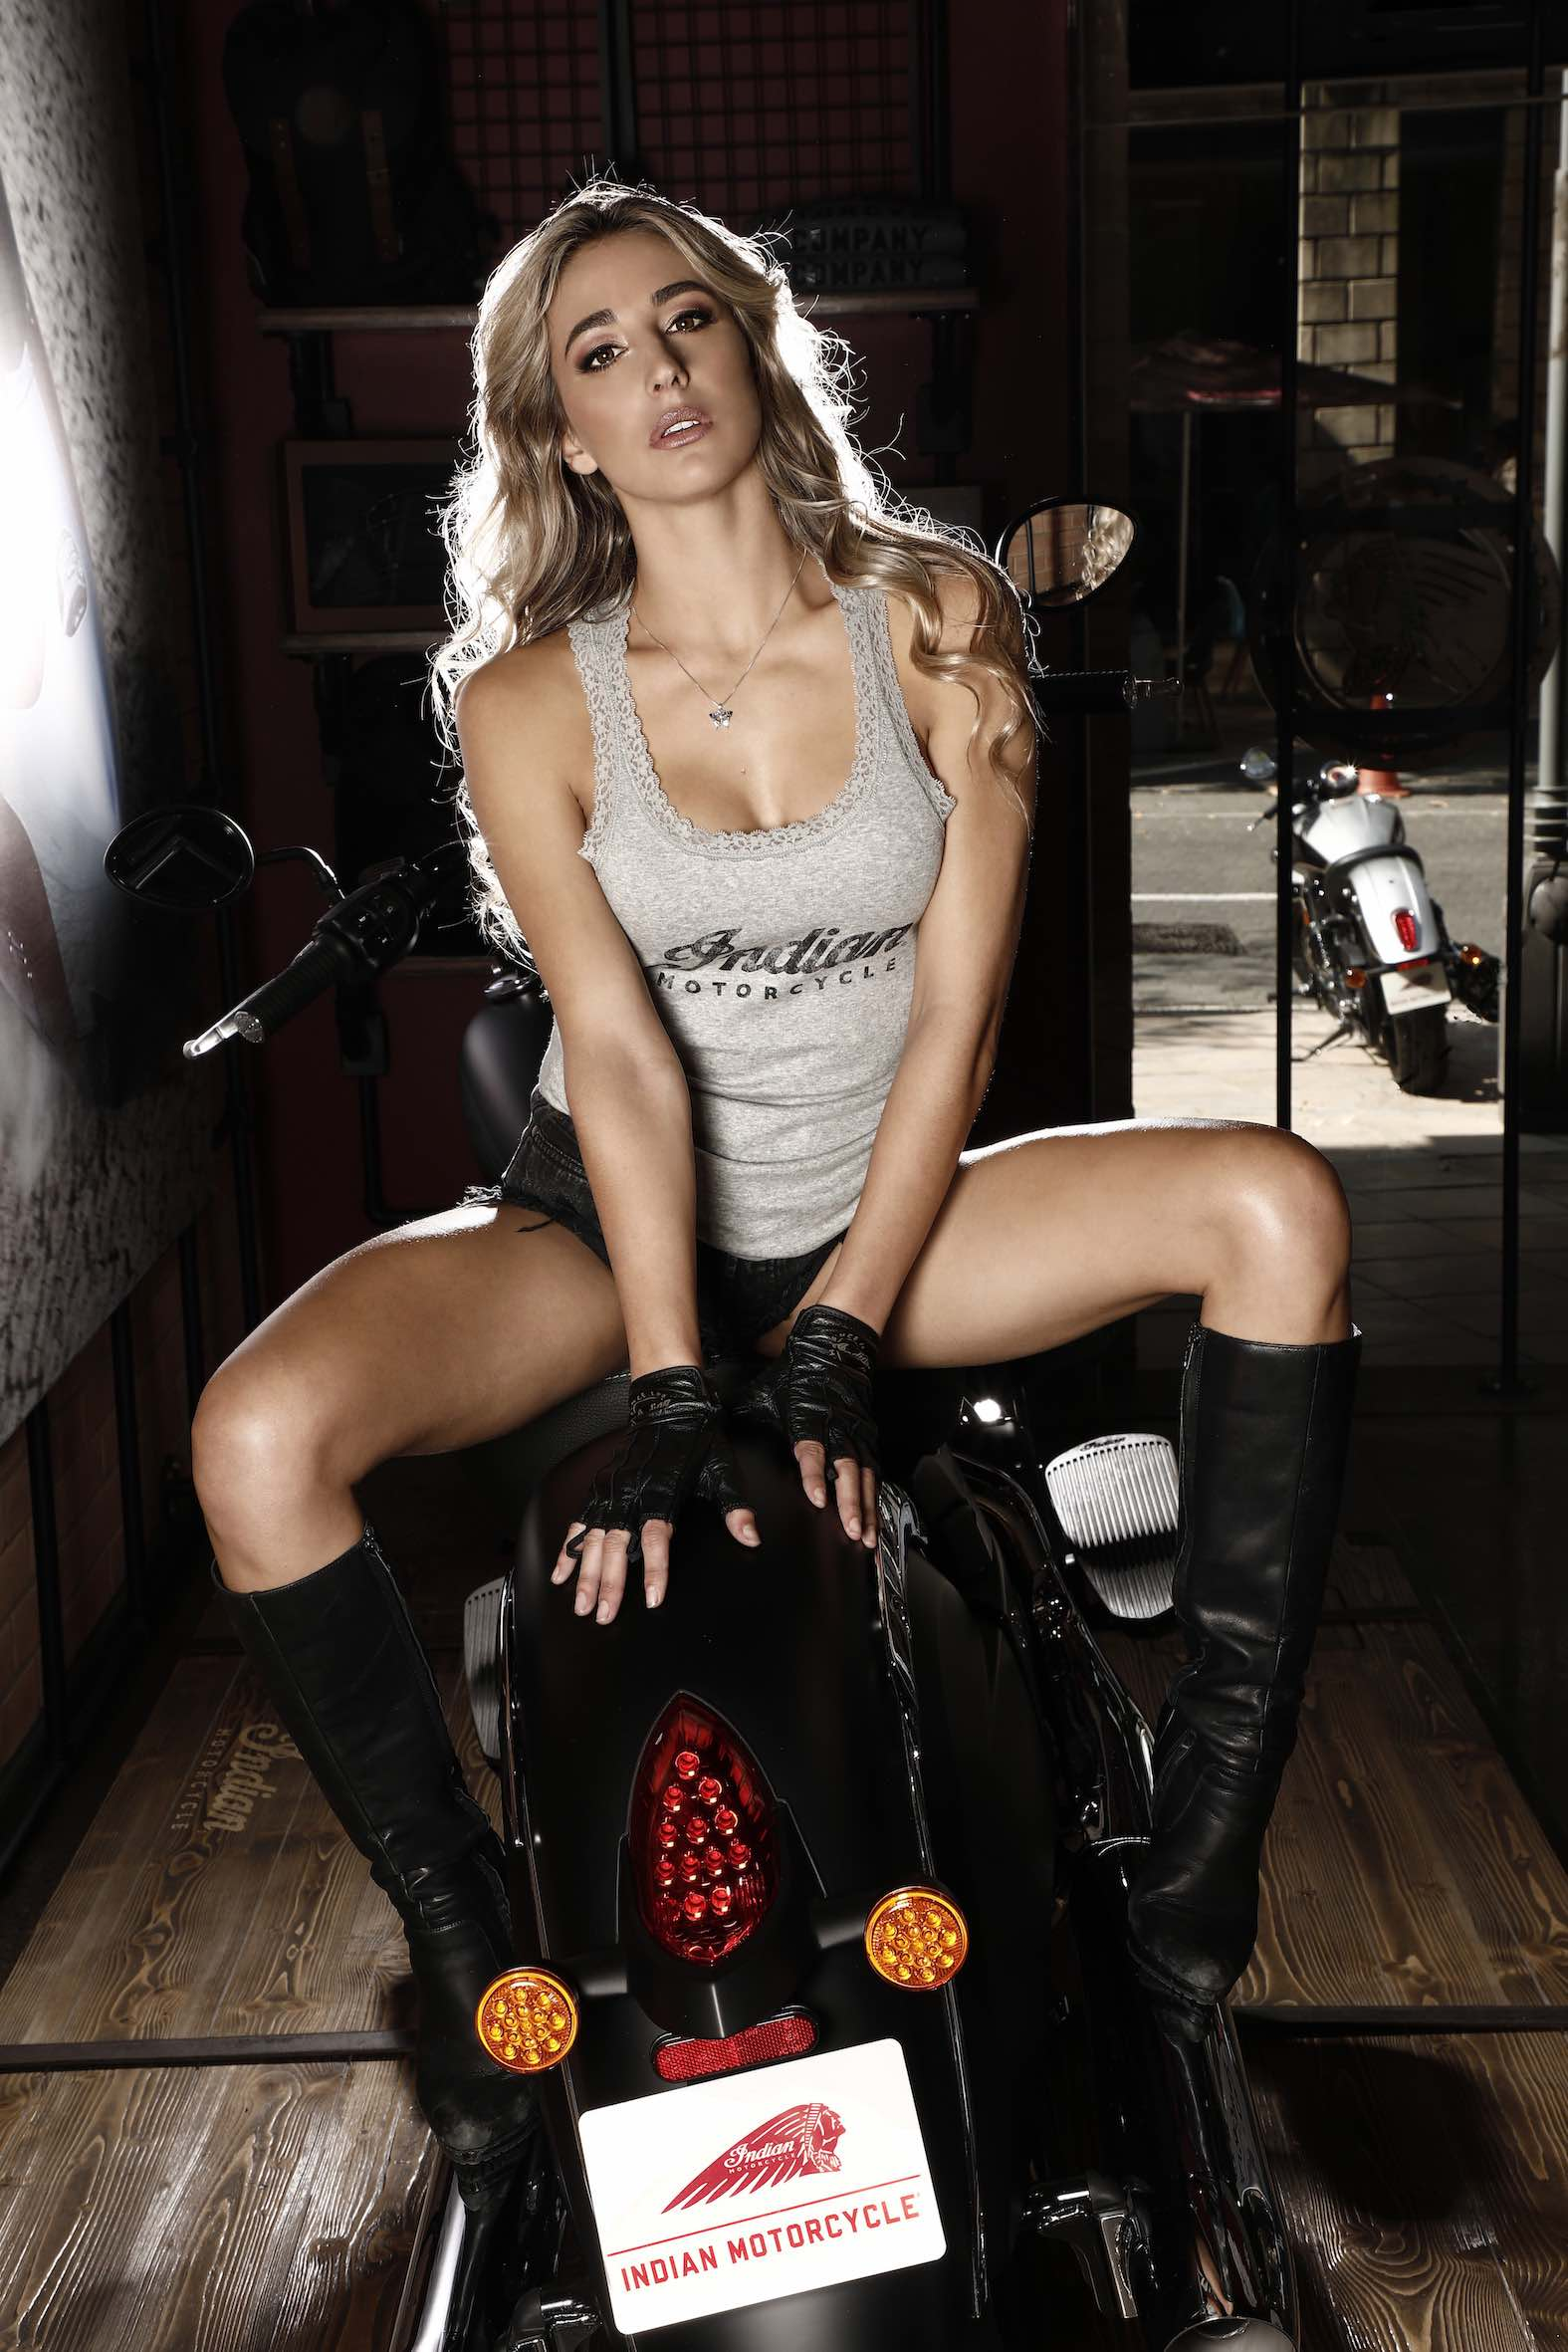 Meet Indian Motorcycle Vixen Jade Wilson at the 2018 SA Bike Fest